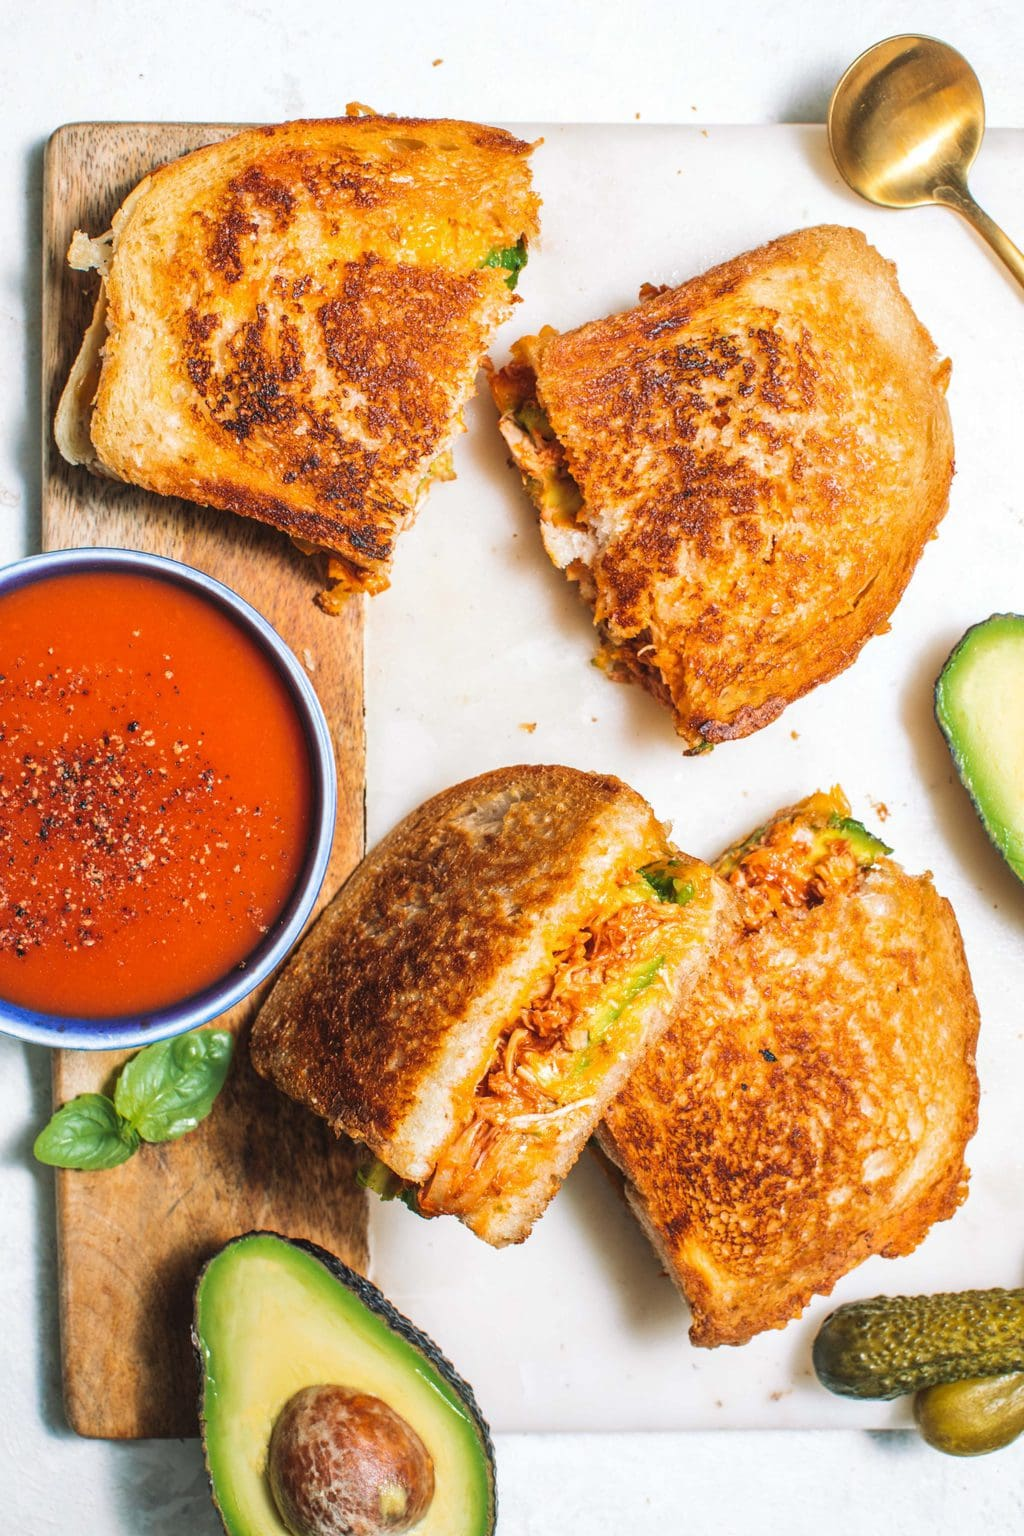 Chipotle chicken avocado melt slices served with tomato soup and pickles.